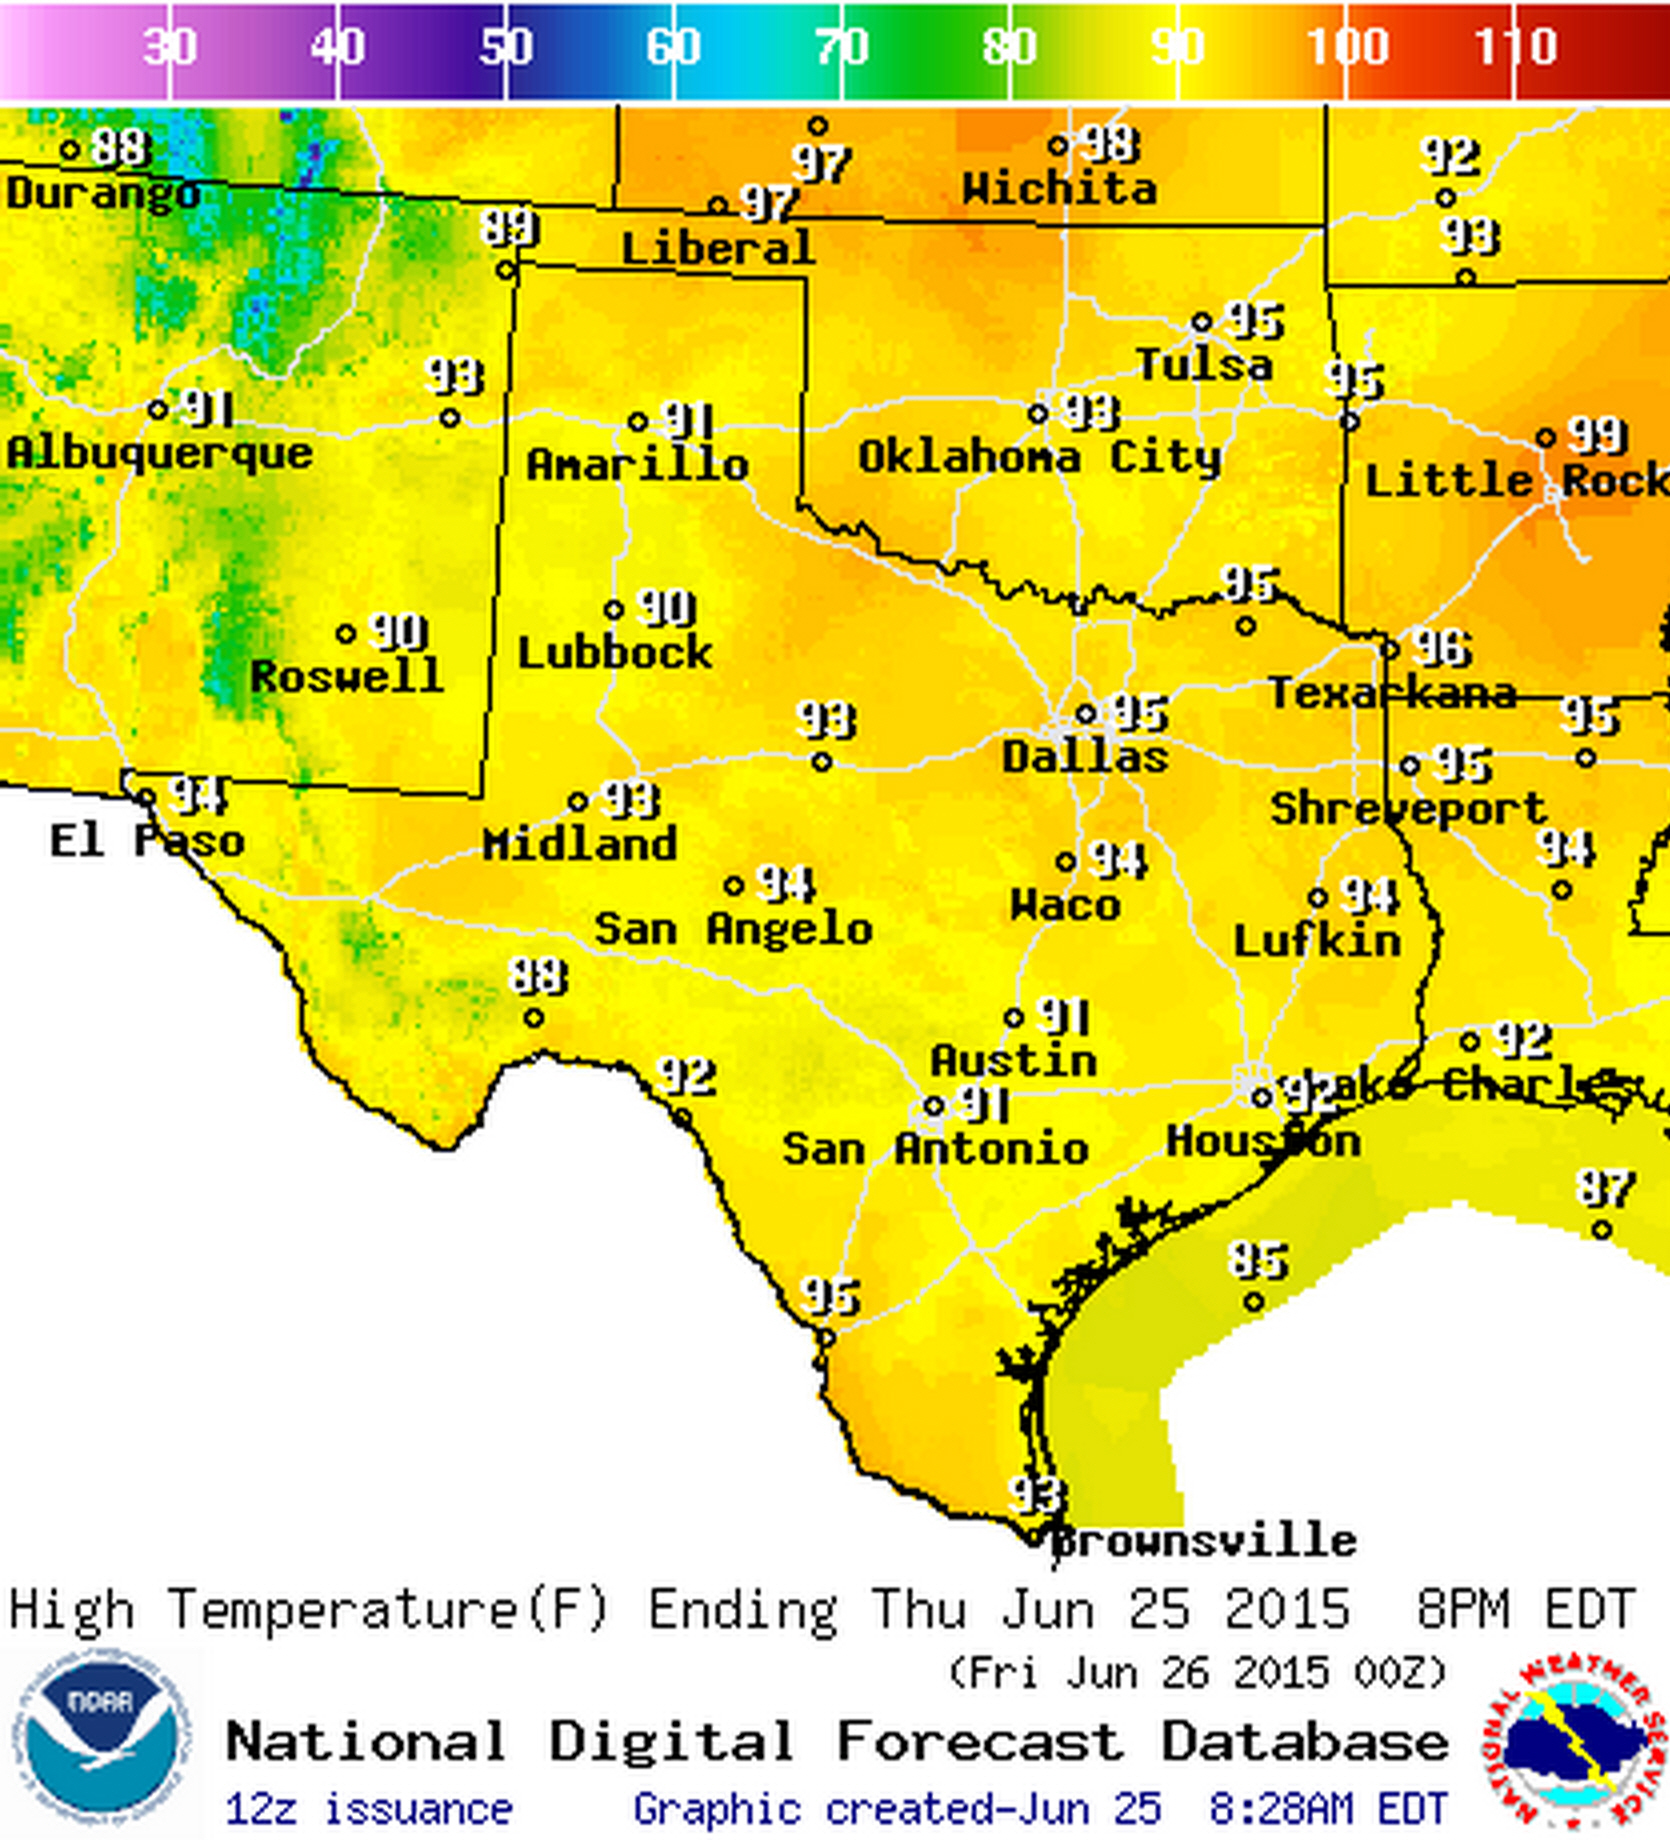 High temperature forecast today